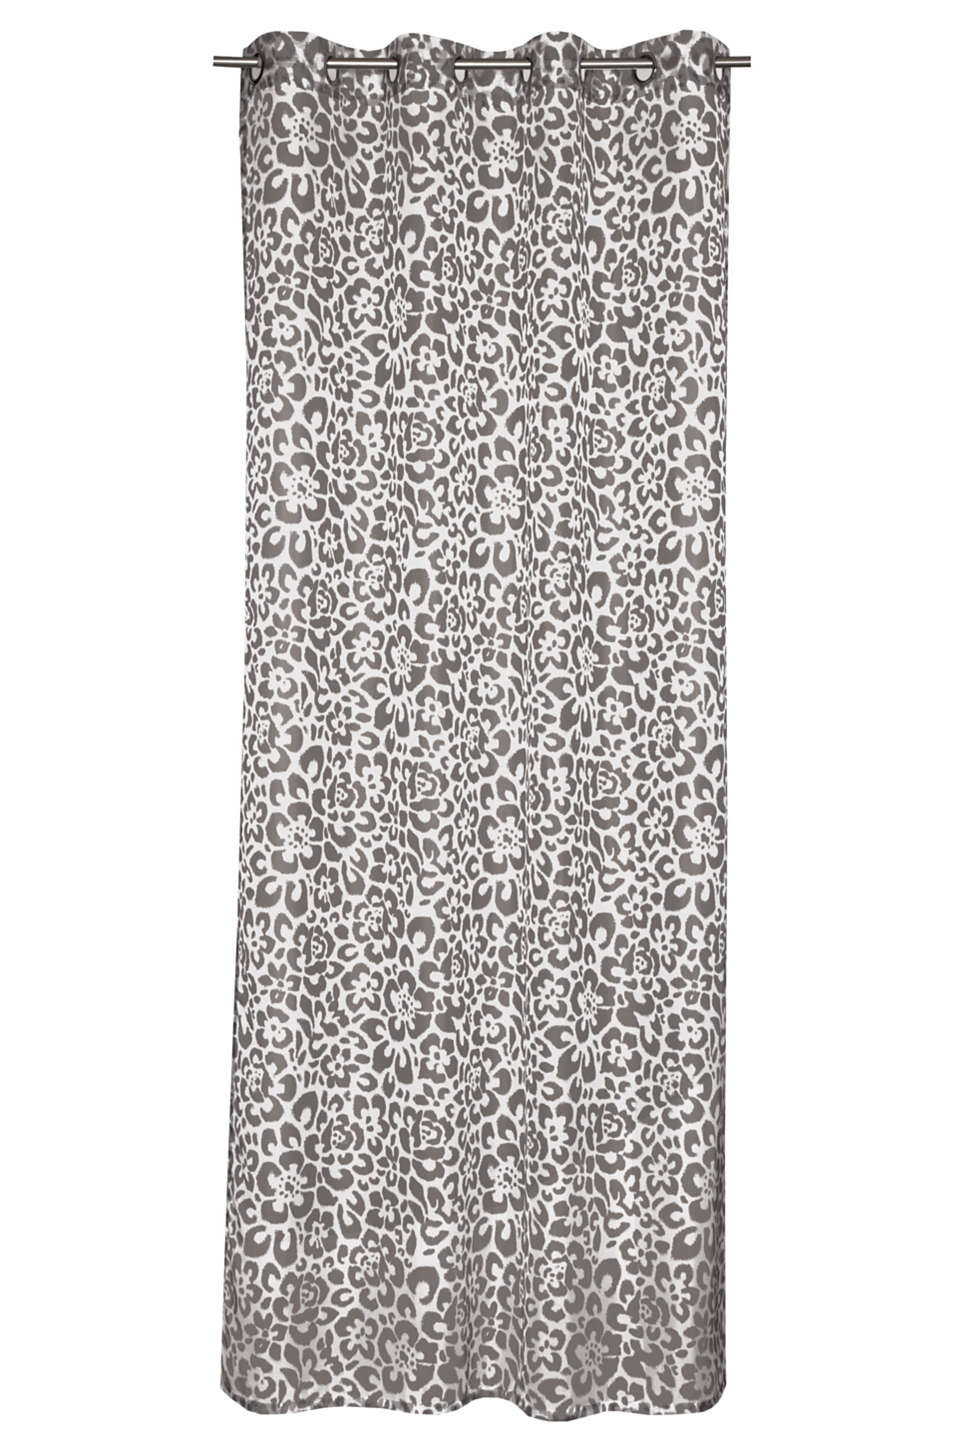 Esprit - Digitally printed Lia eyelet curtain in voile